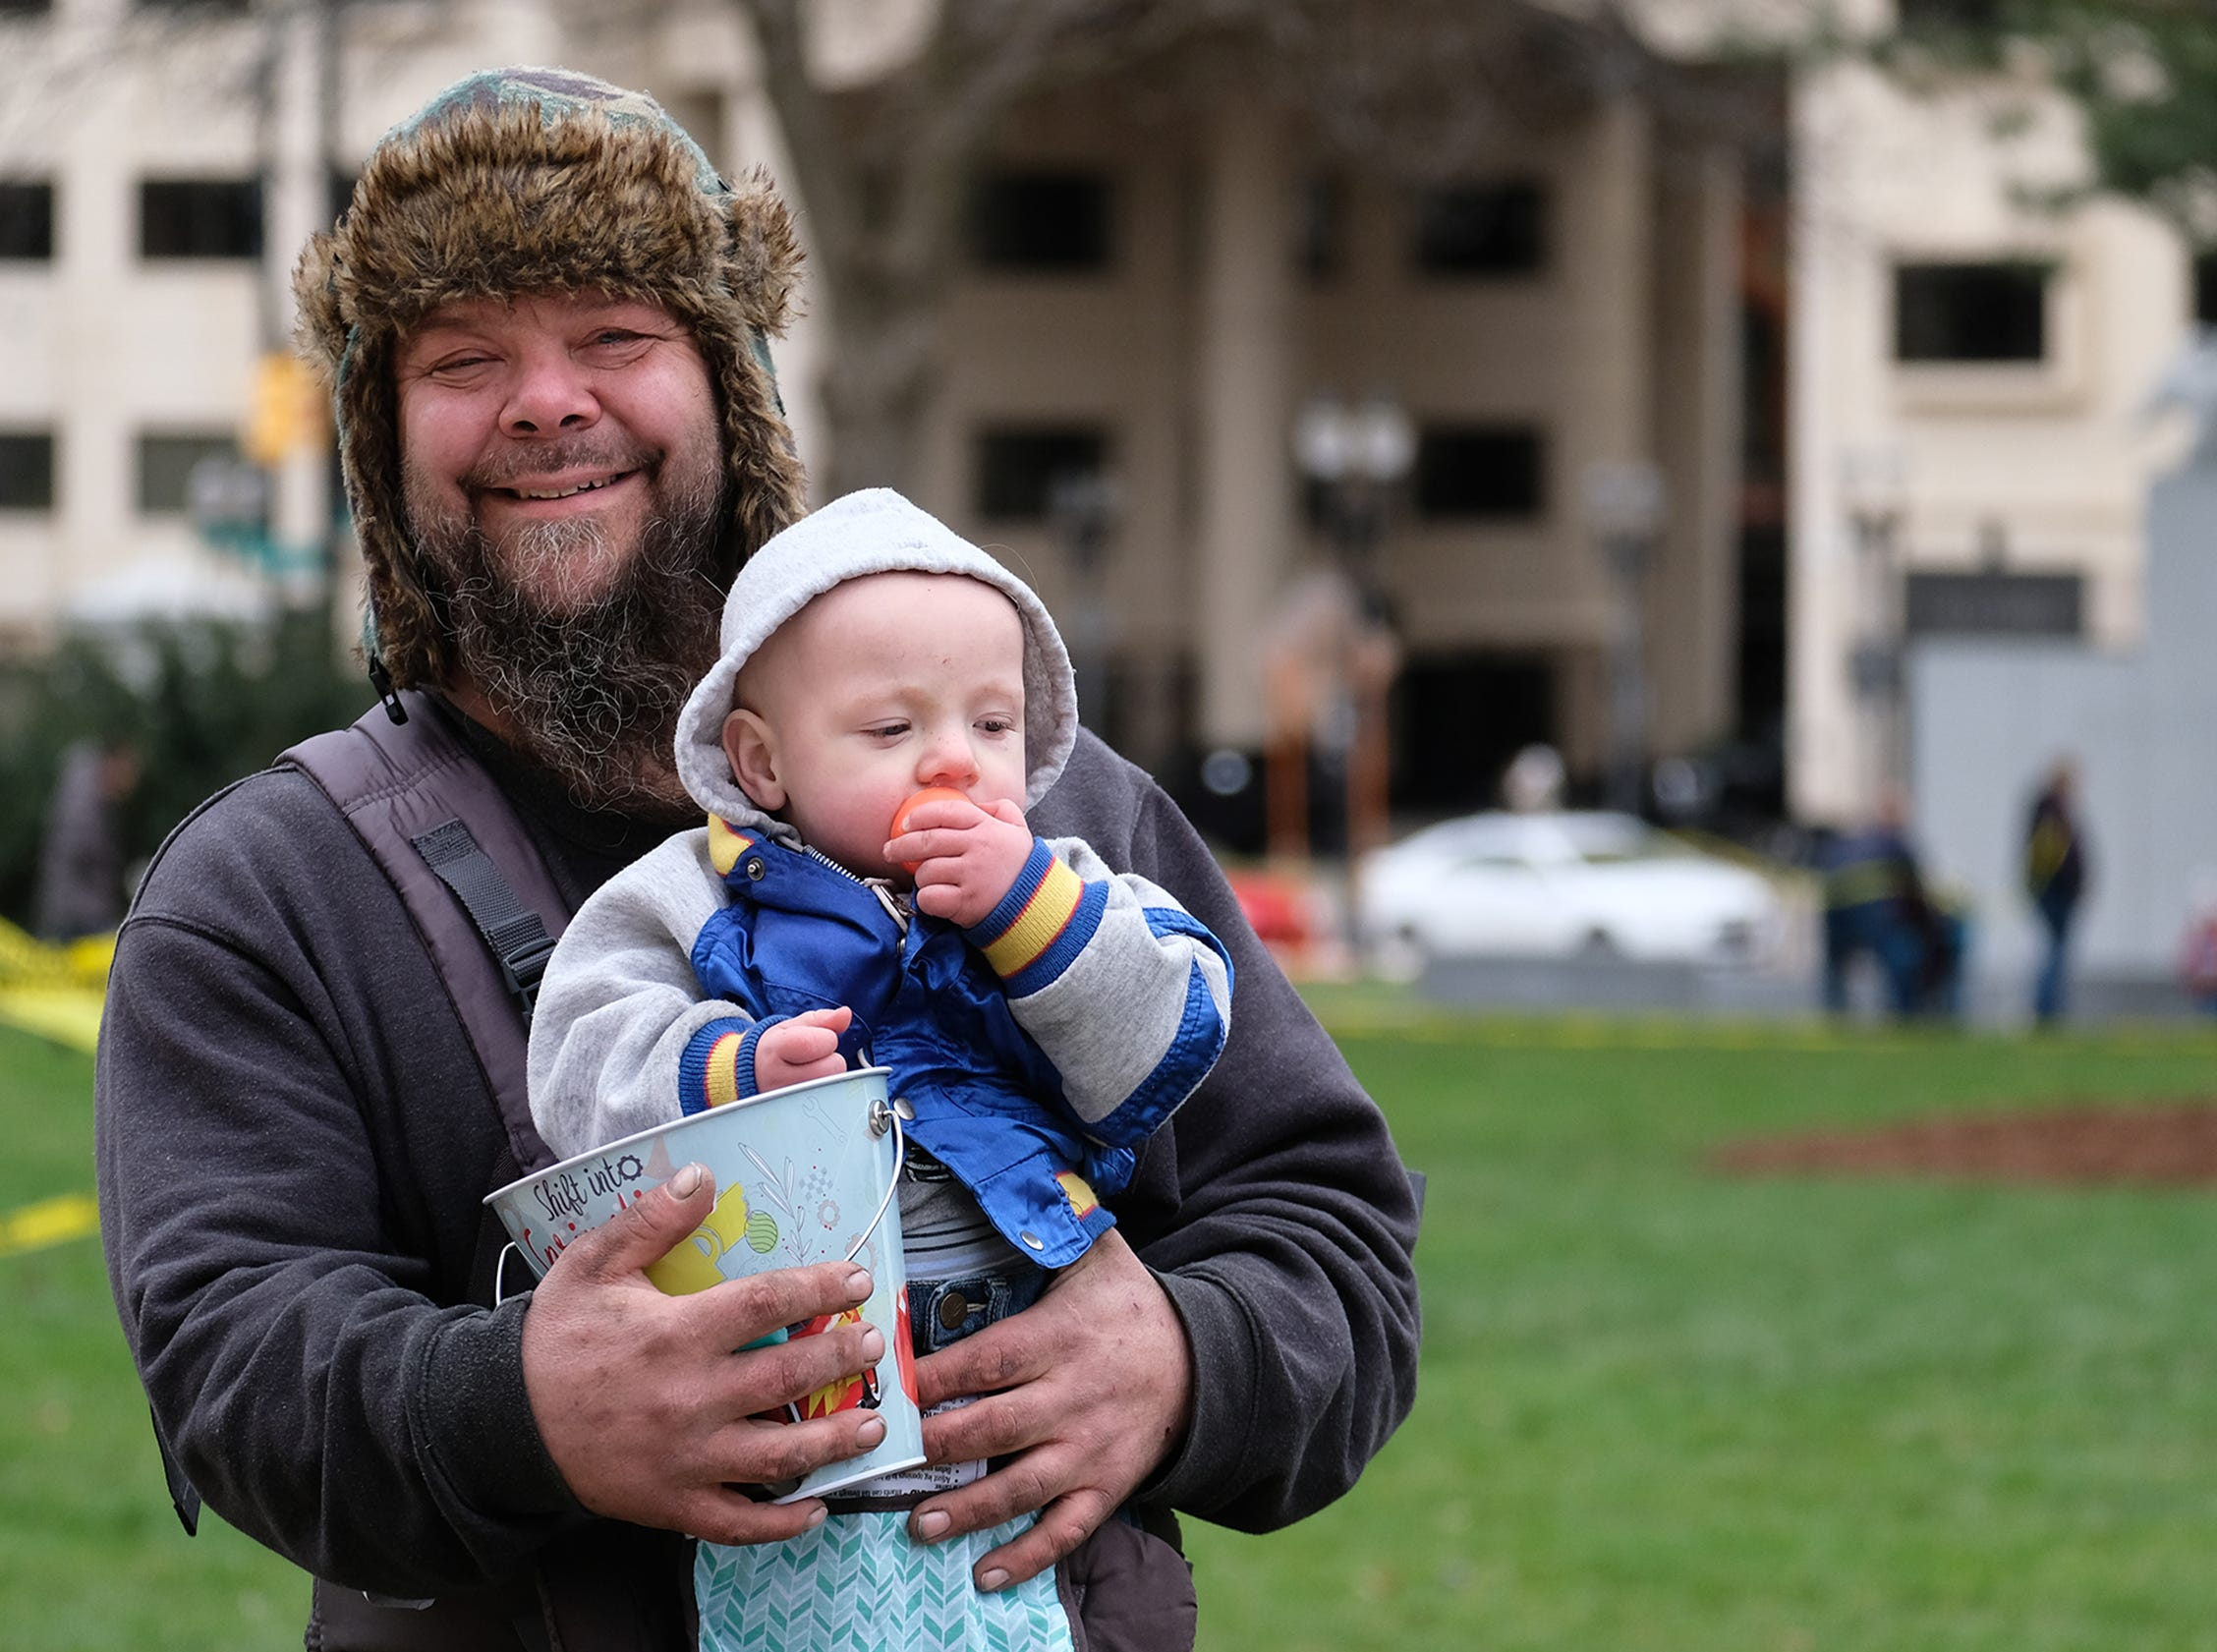 Steven Lull from Lansing and his son Atreyu, 1, have fun at the annual Lansing Jaycees Easter Egg Hunt at the Capitol Saturday, April 20, 2019.